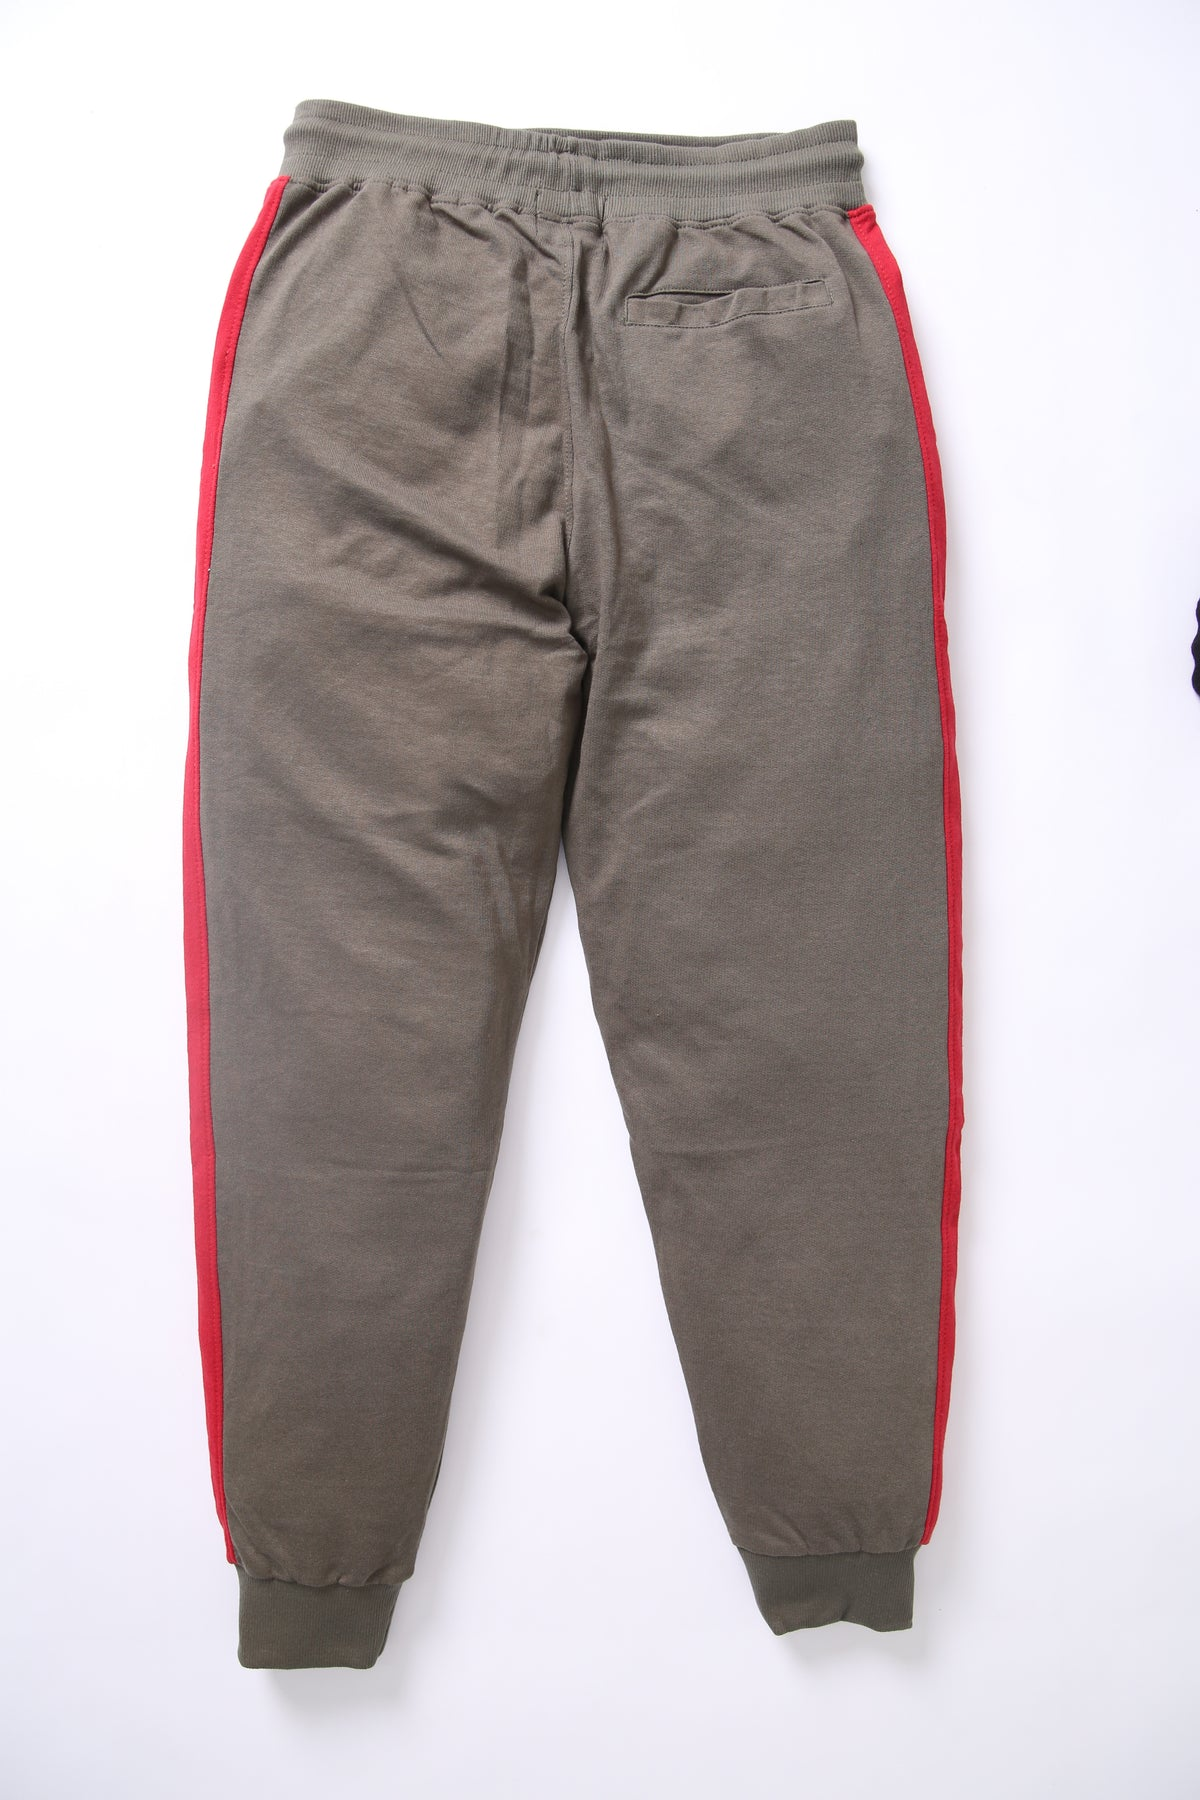 BSK - Men Olive Trouser with Quoted Red Stripes